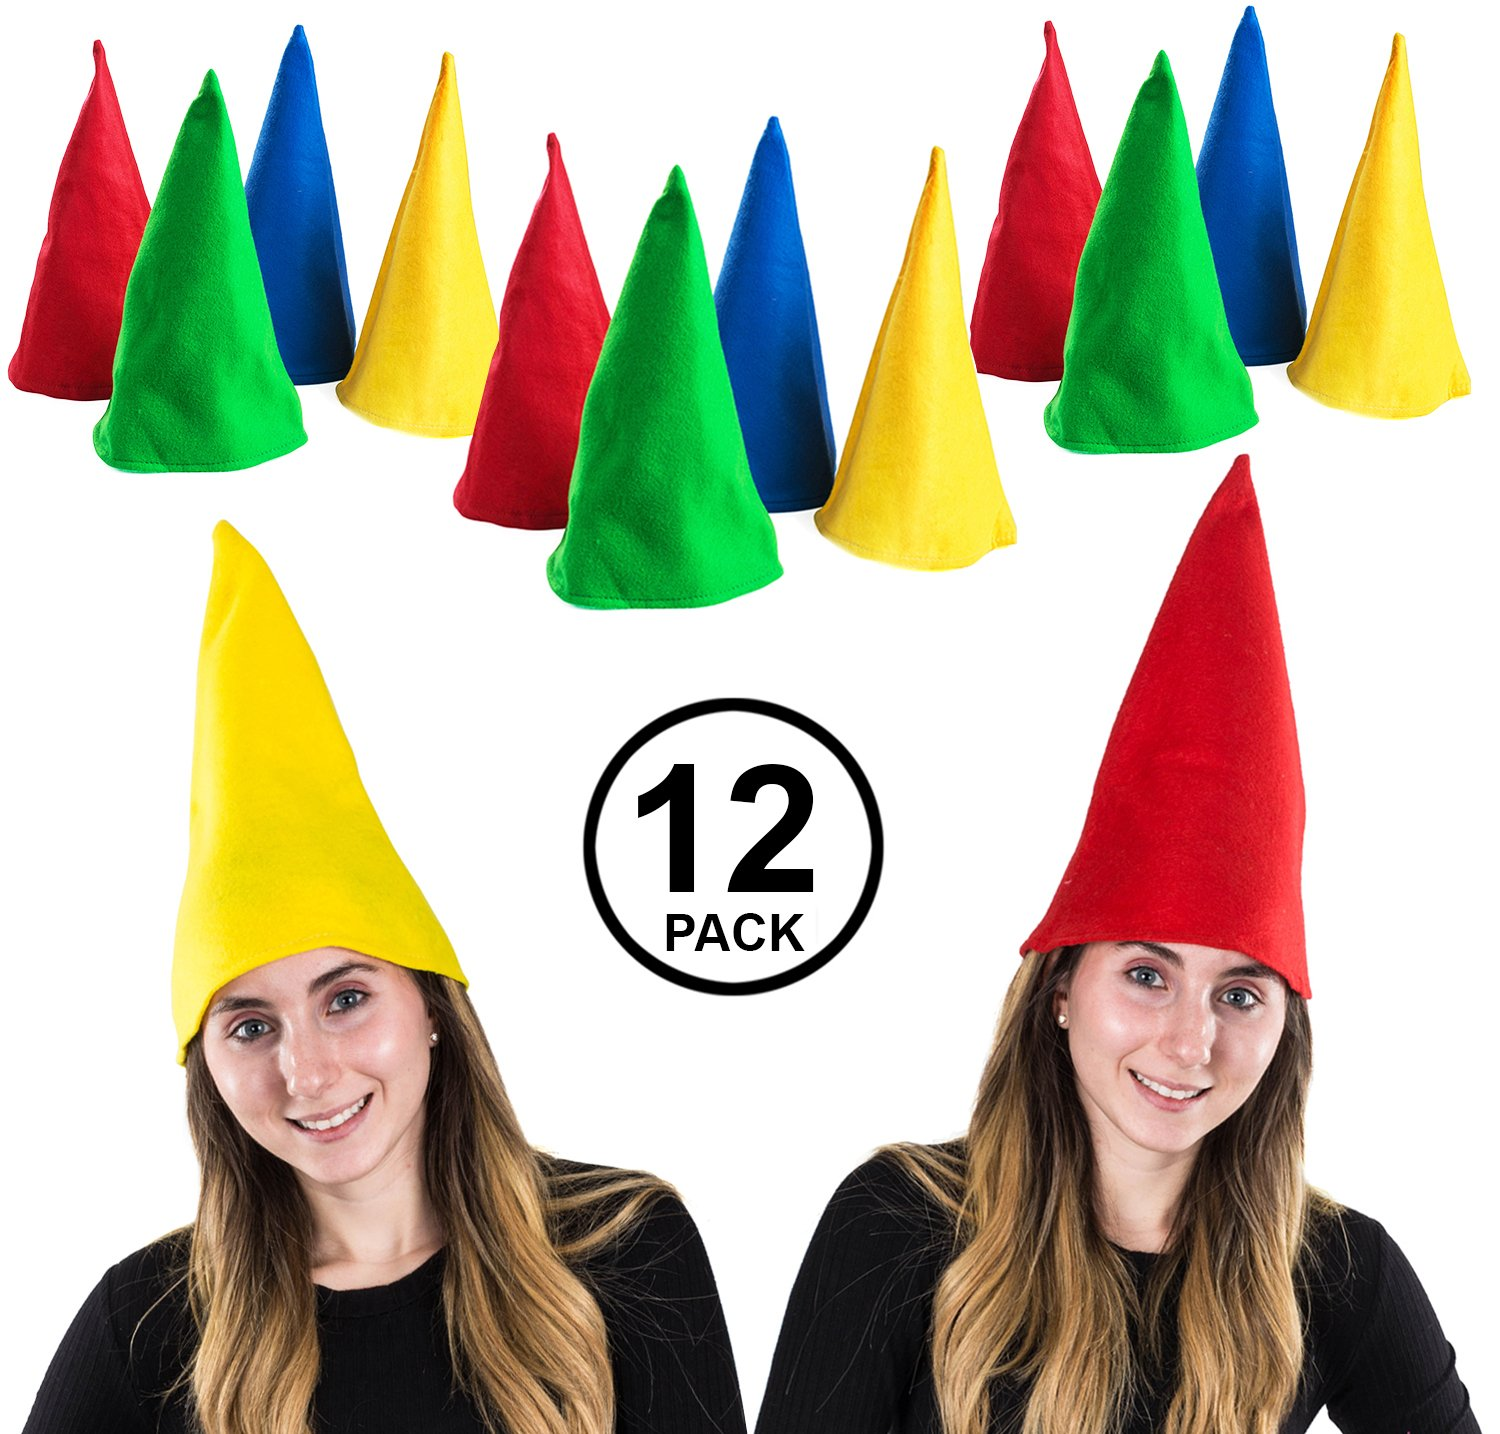 Funny Party Hats Gnome Hats - Set of 12 Hats - Dwarf Hats - Dwarf Costume - Gnome Costume by Funny Party Hats